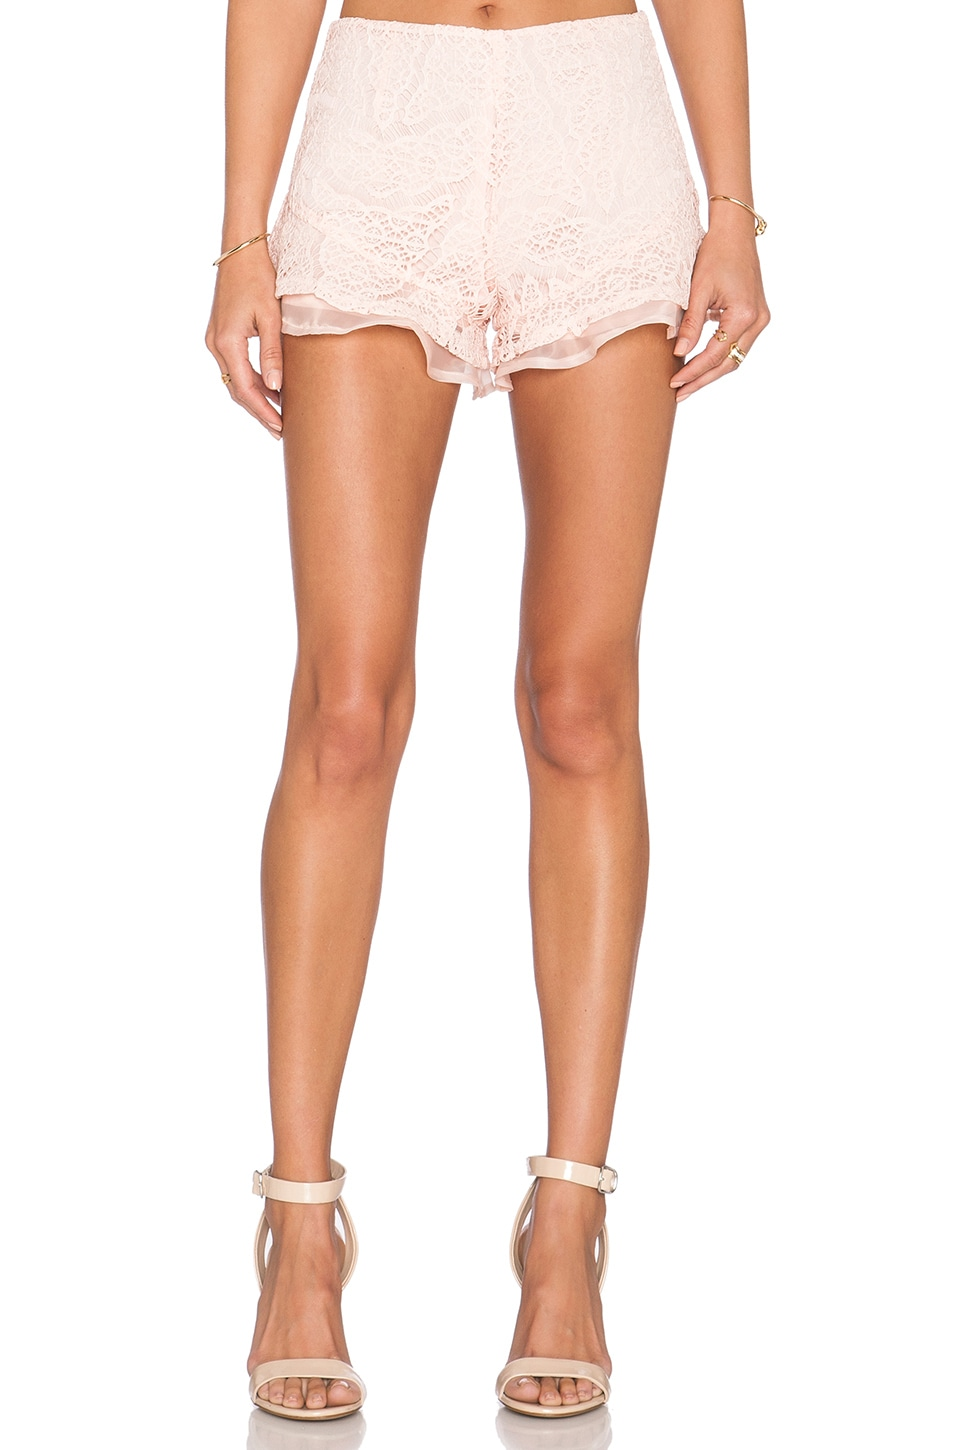 J.O.A. Lace Short in Blush Pink